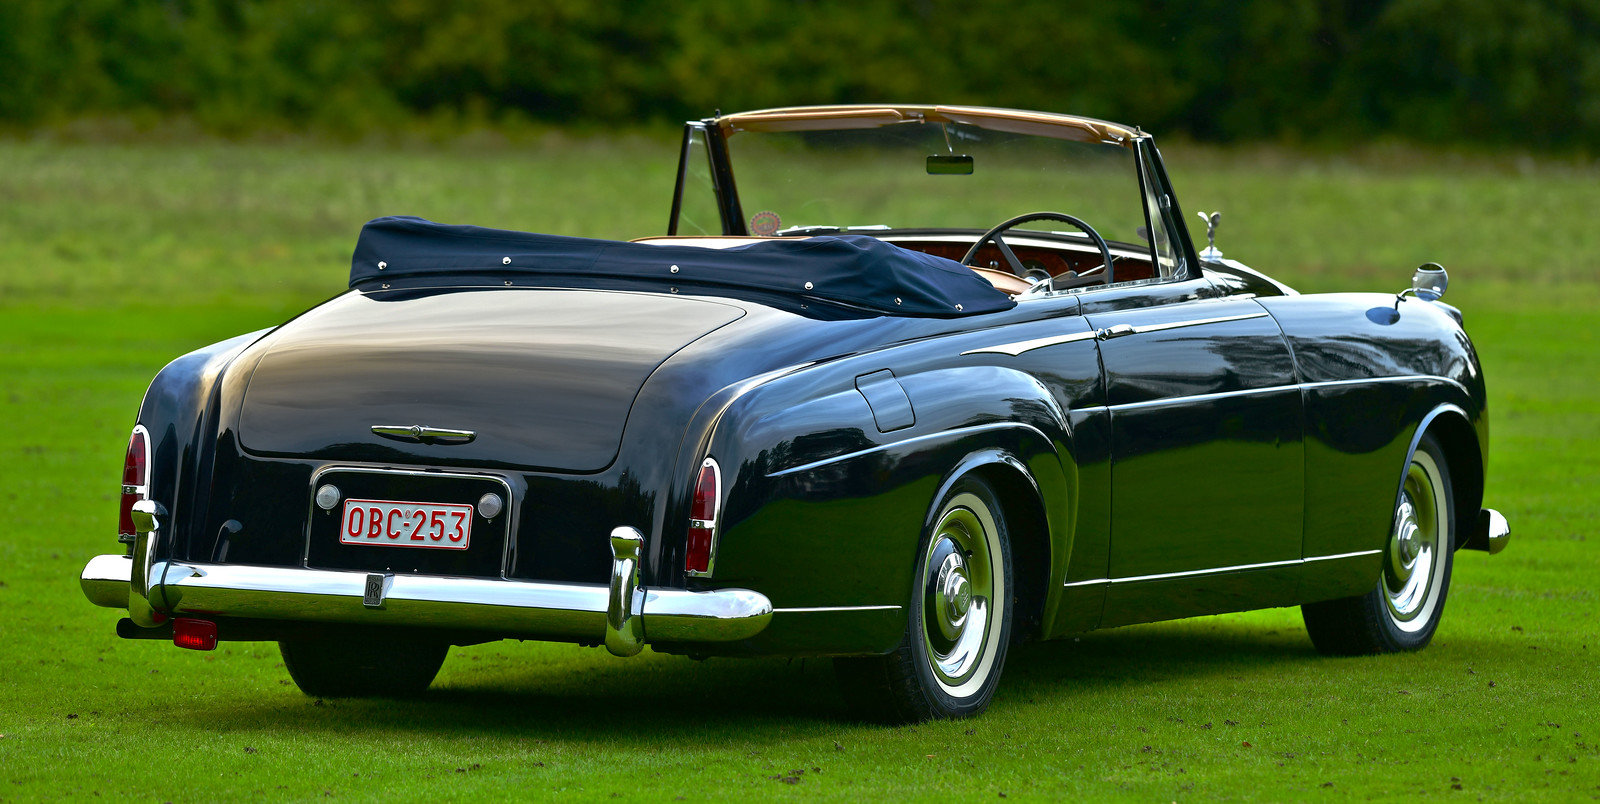 1957 Rolls Royce Silver Cloud 1 Drop Head Coupe. For Sale (picture 3 of 6)